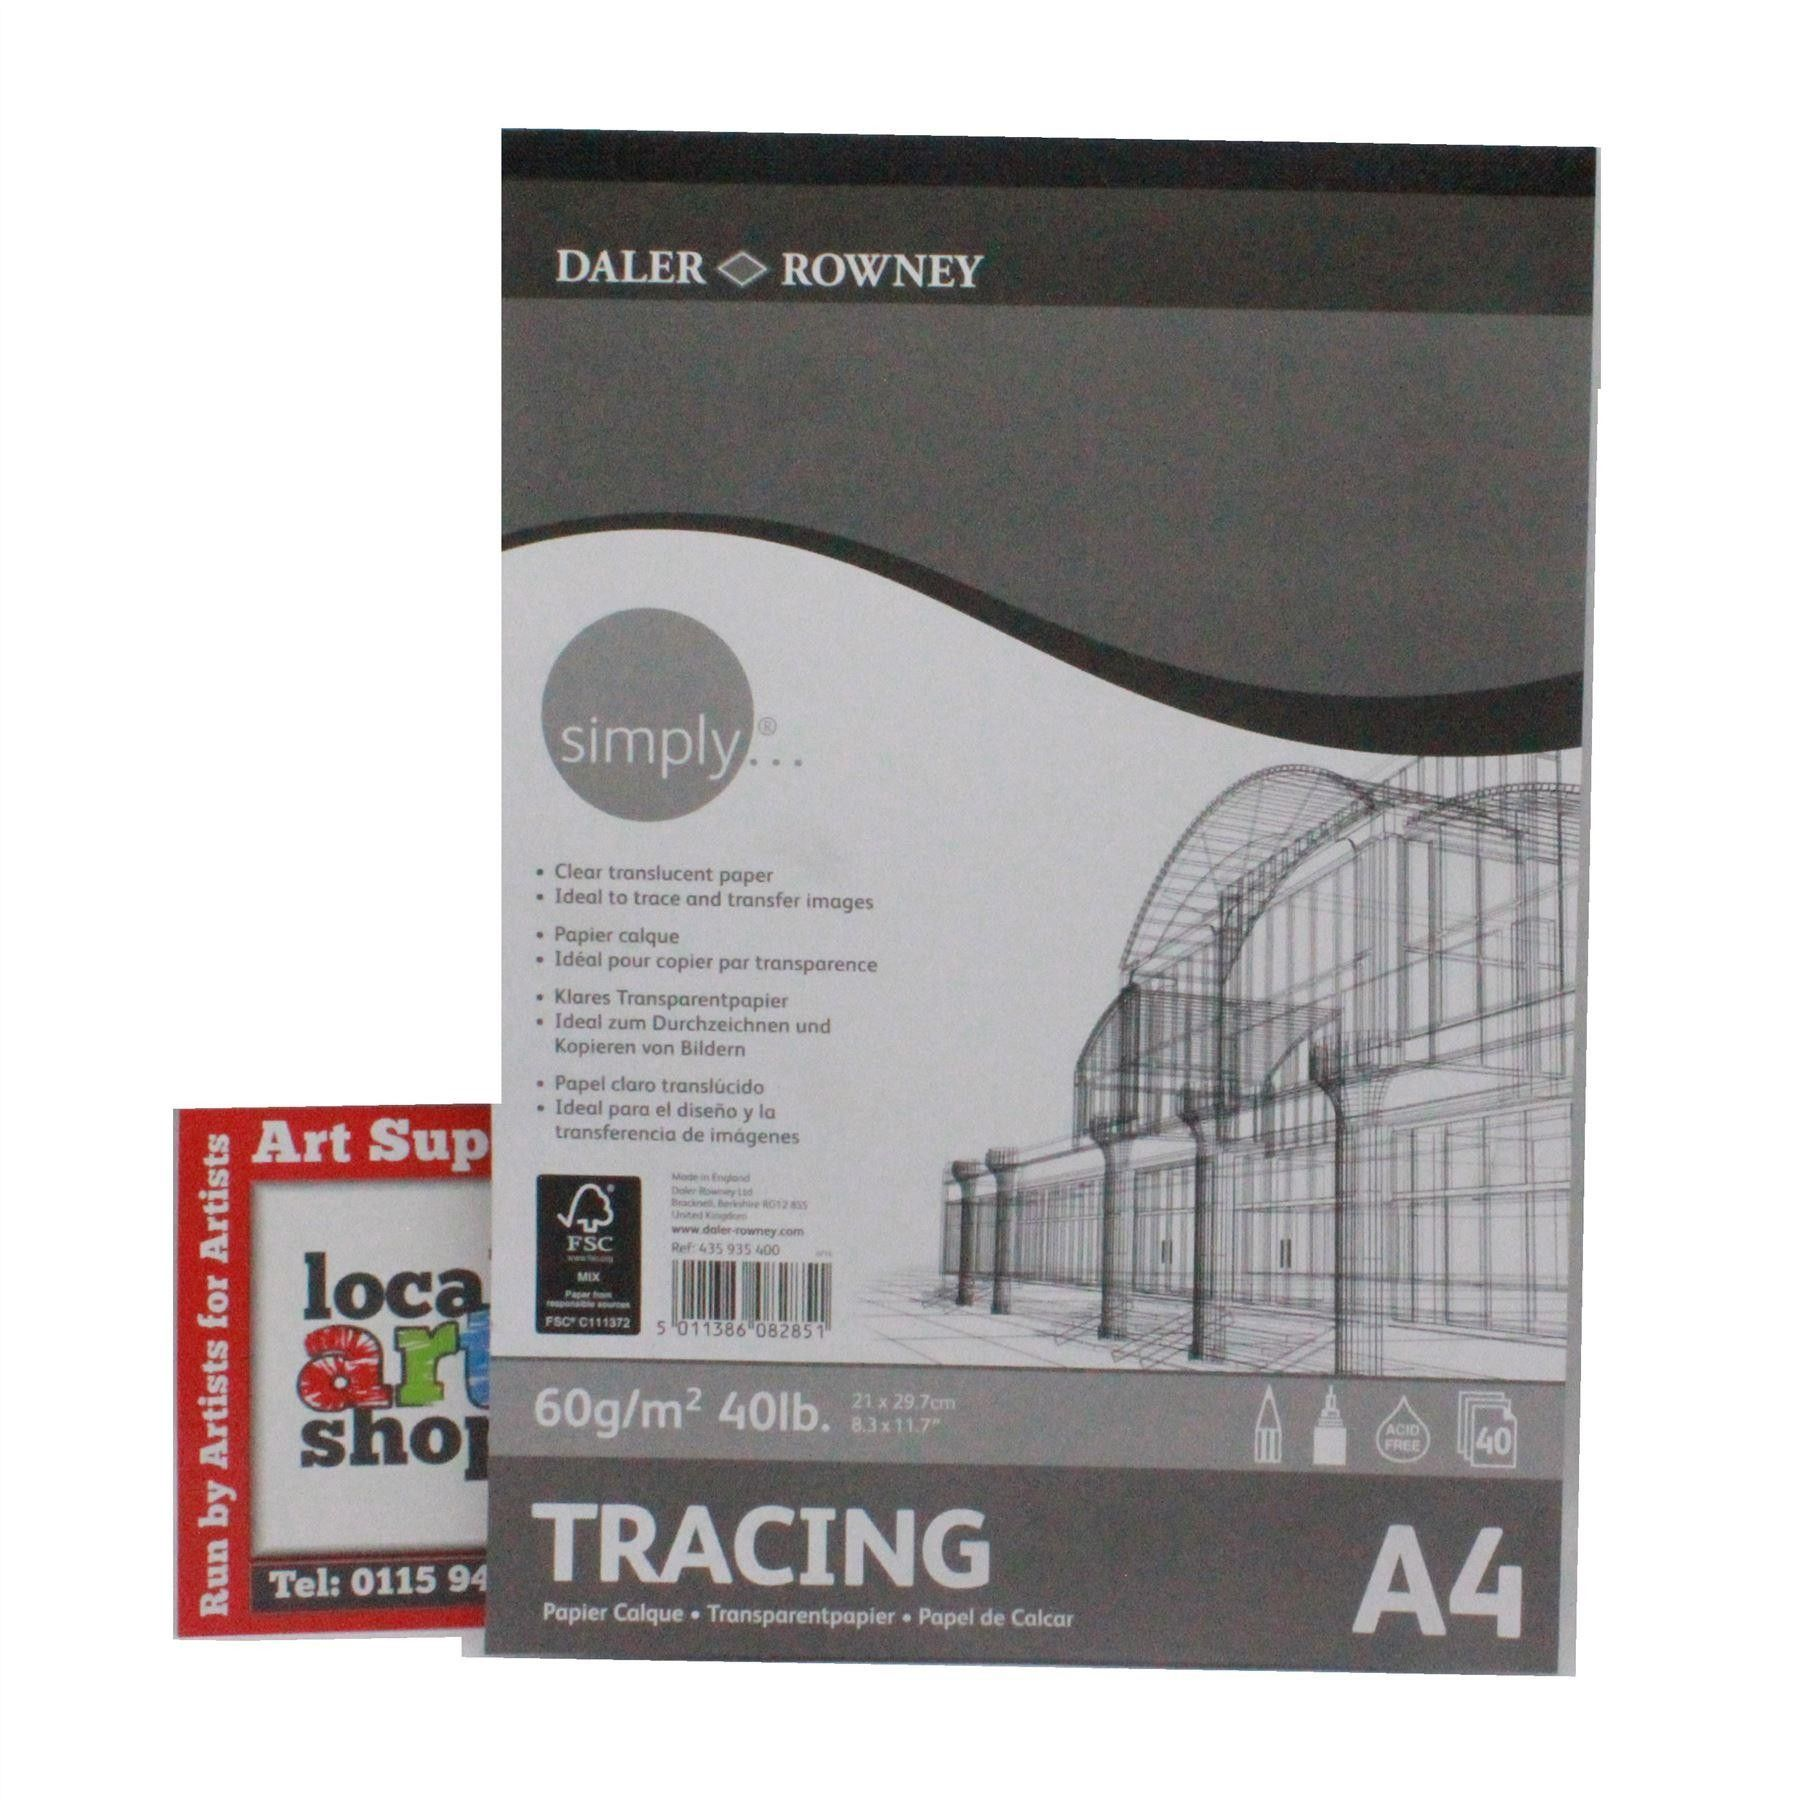 Daler Rowney Simply Tracing Paper Pad 60gsm A4 Paper Paper